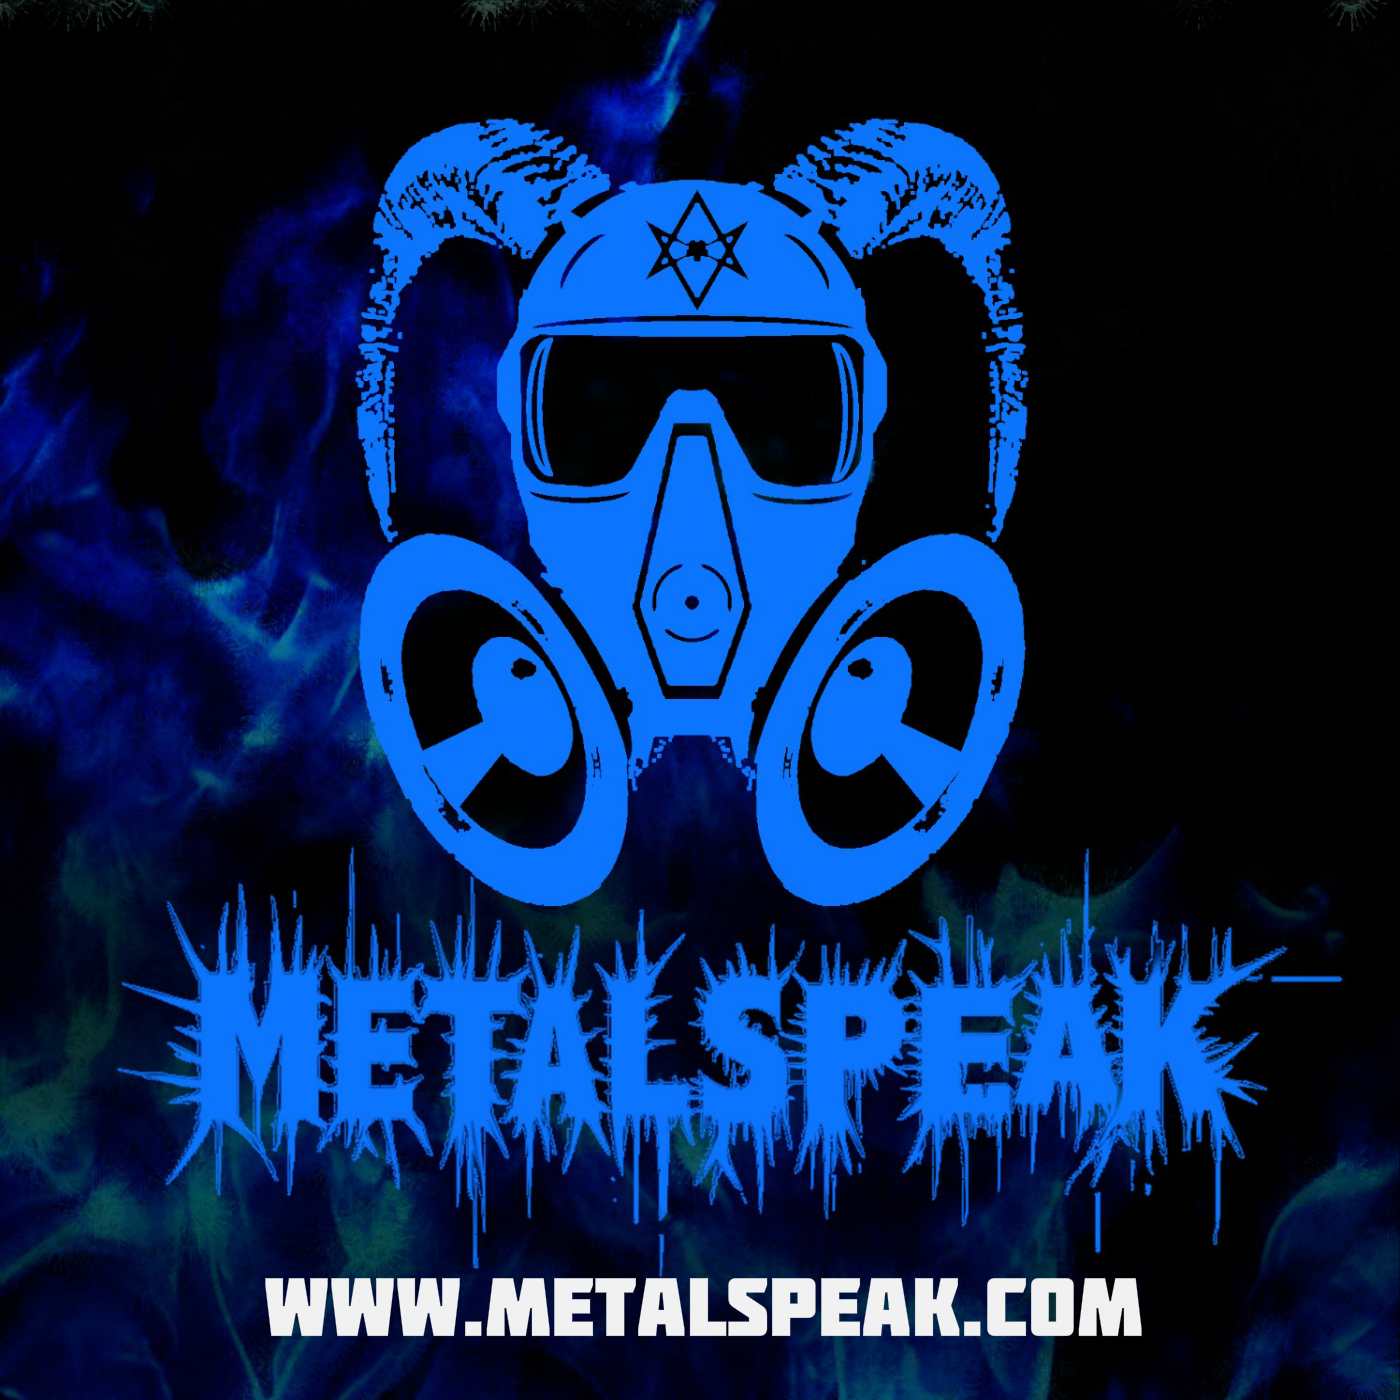 MetalsPeak - Reviews